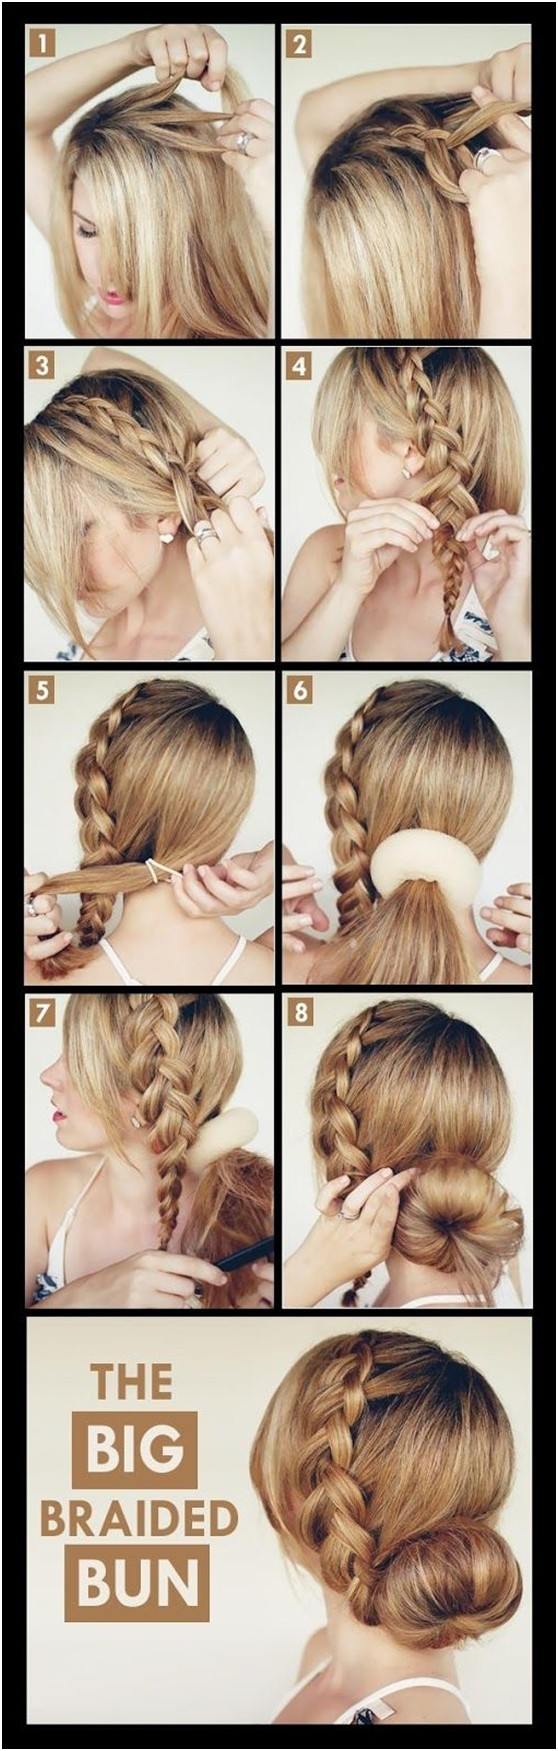 Swell 15 Braided Updo Hairstyles Tutorials Pretty Designs Hairstyles For Men Maxibearus